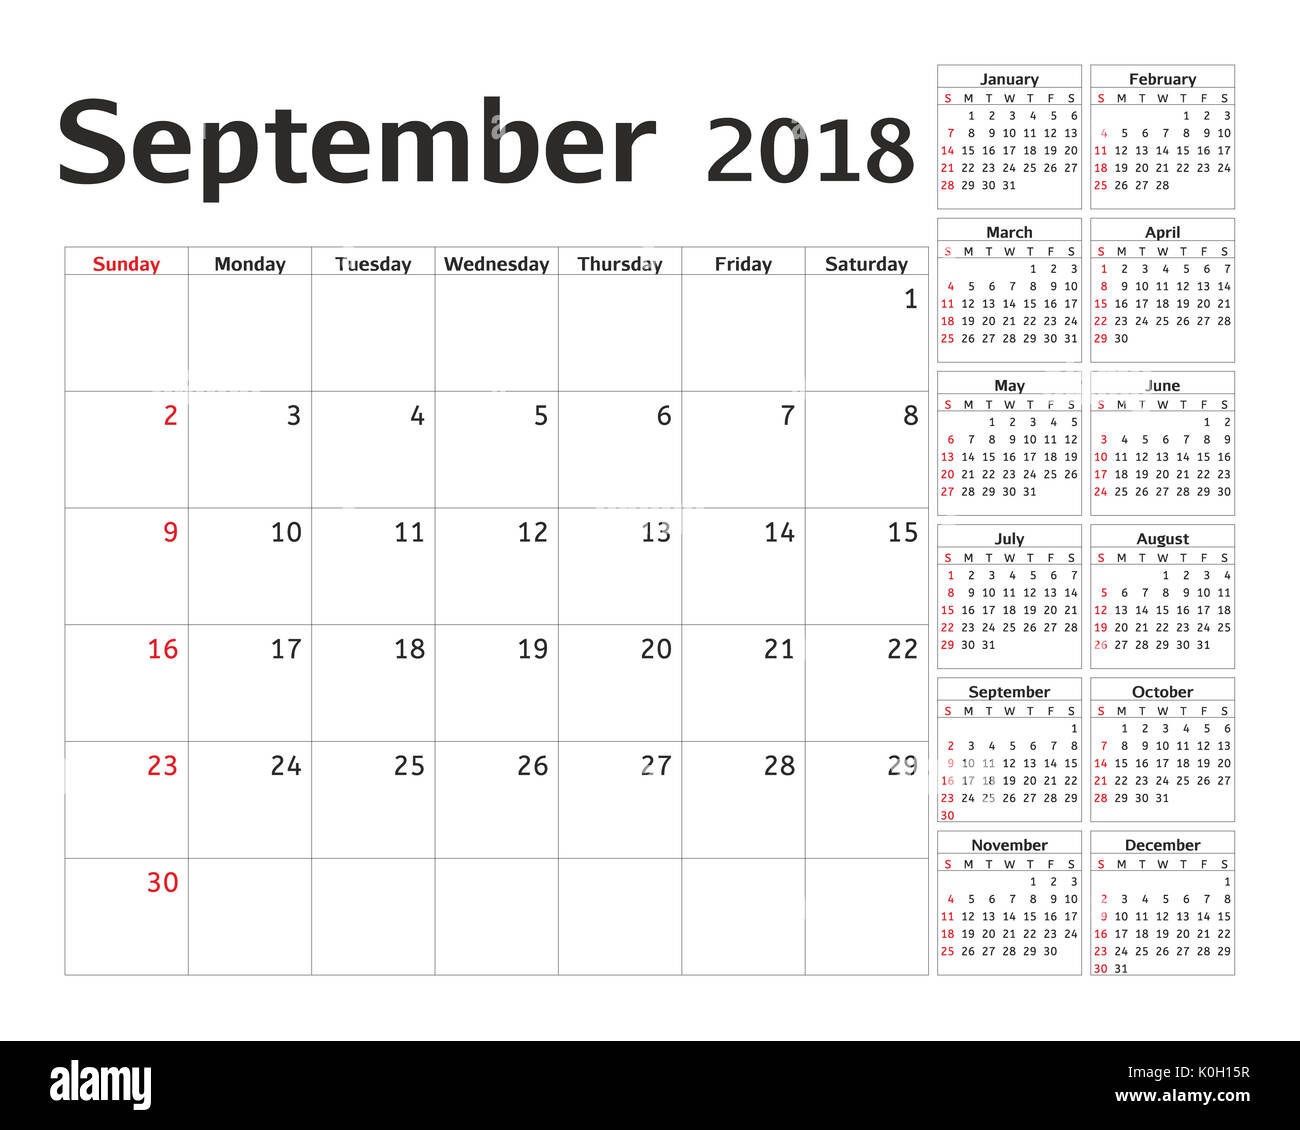 simple calendar planner for 2018 year calendar planning week design september template set of 12 months week starts sunday